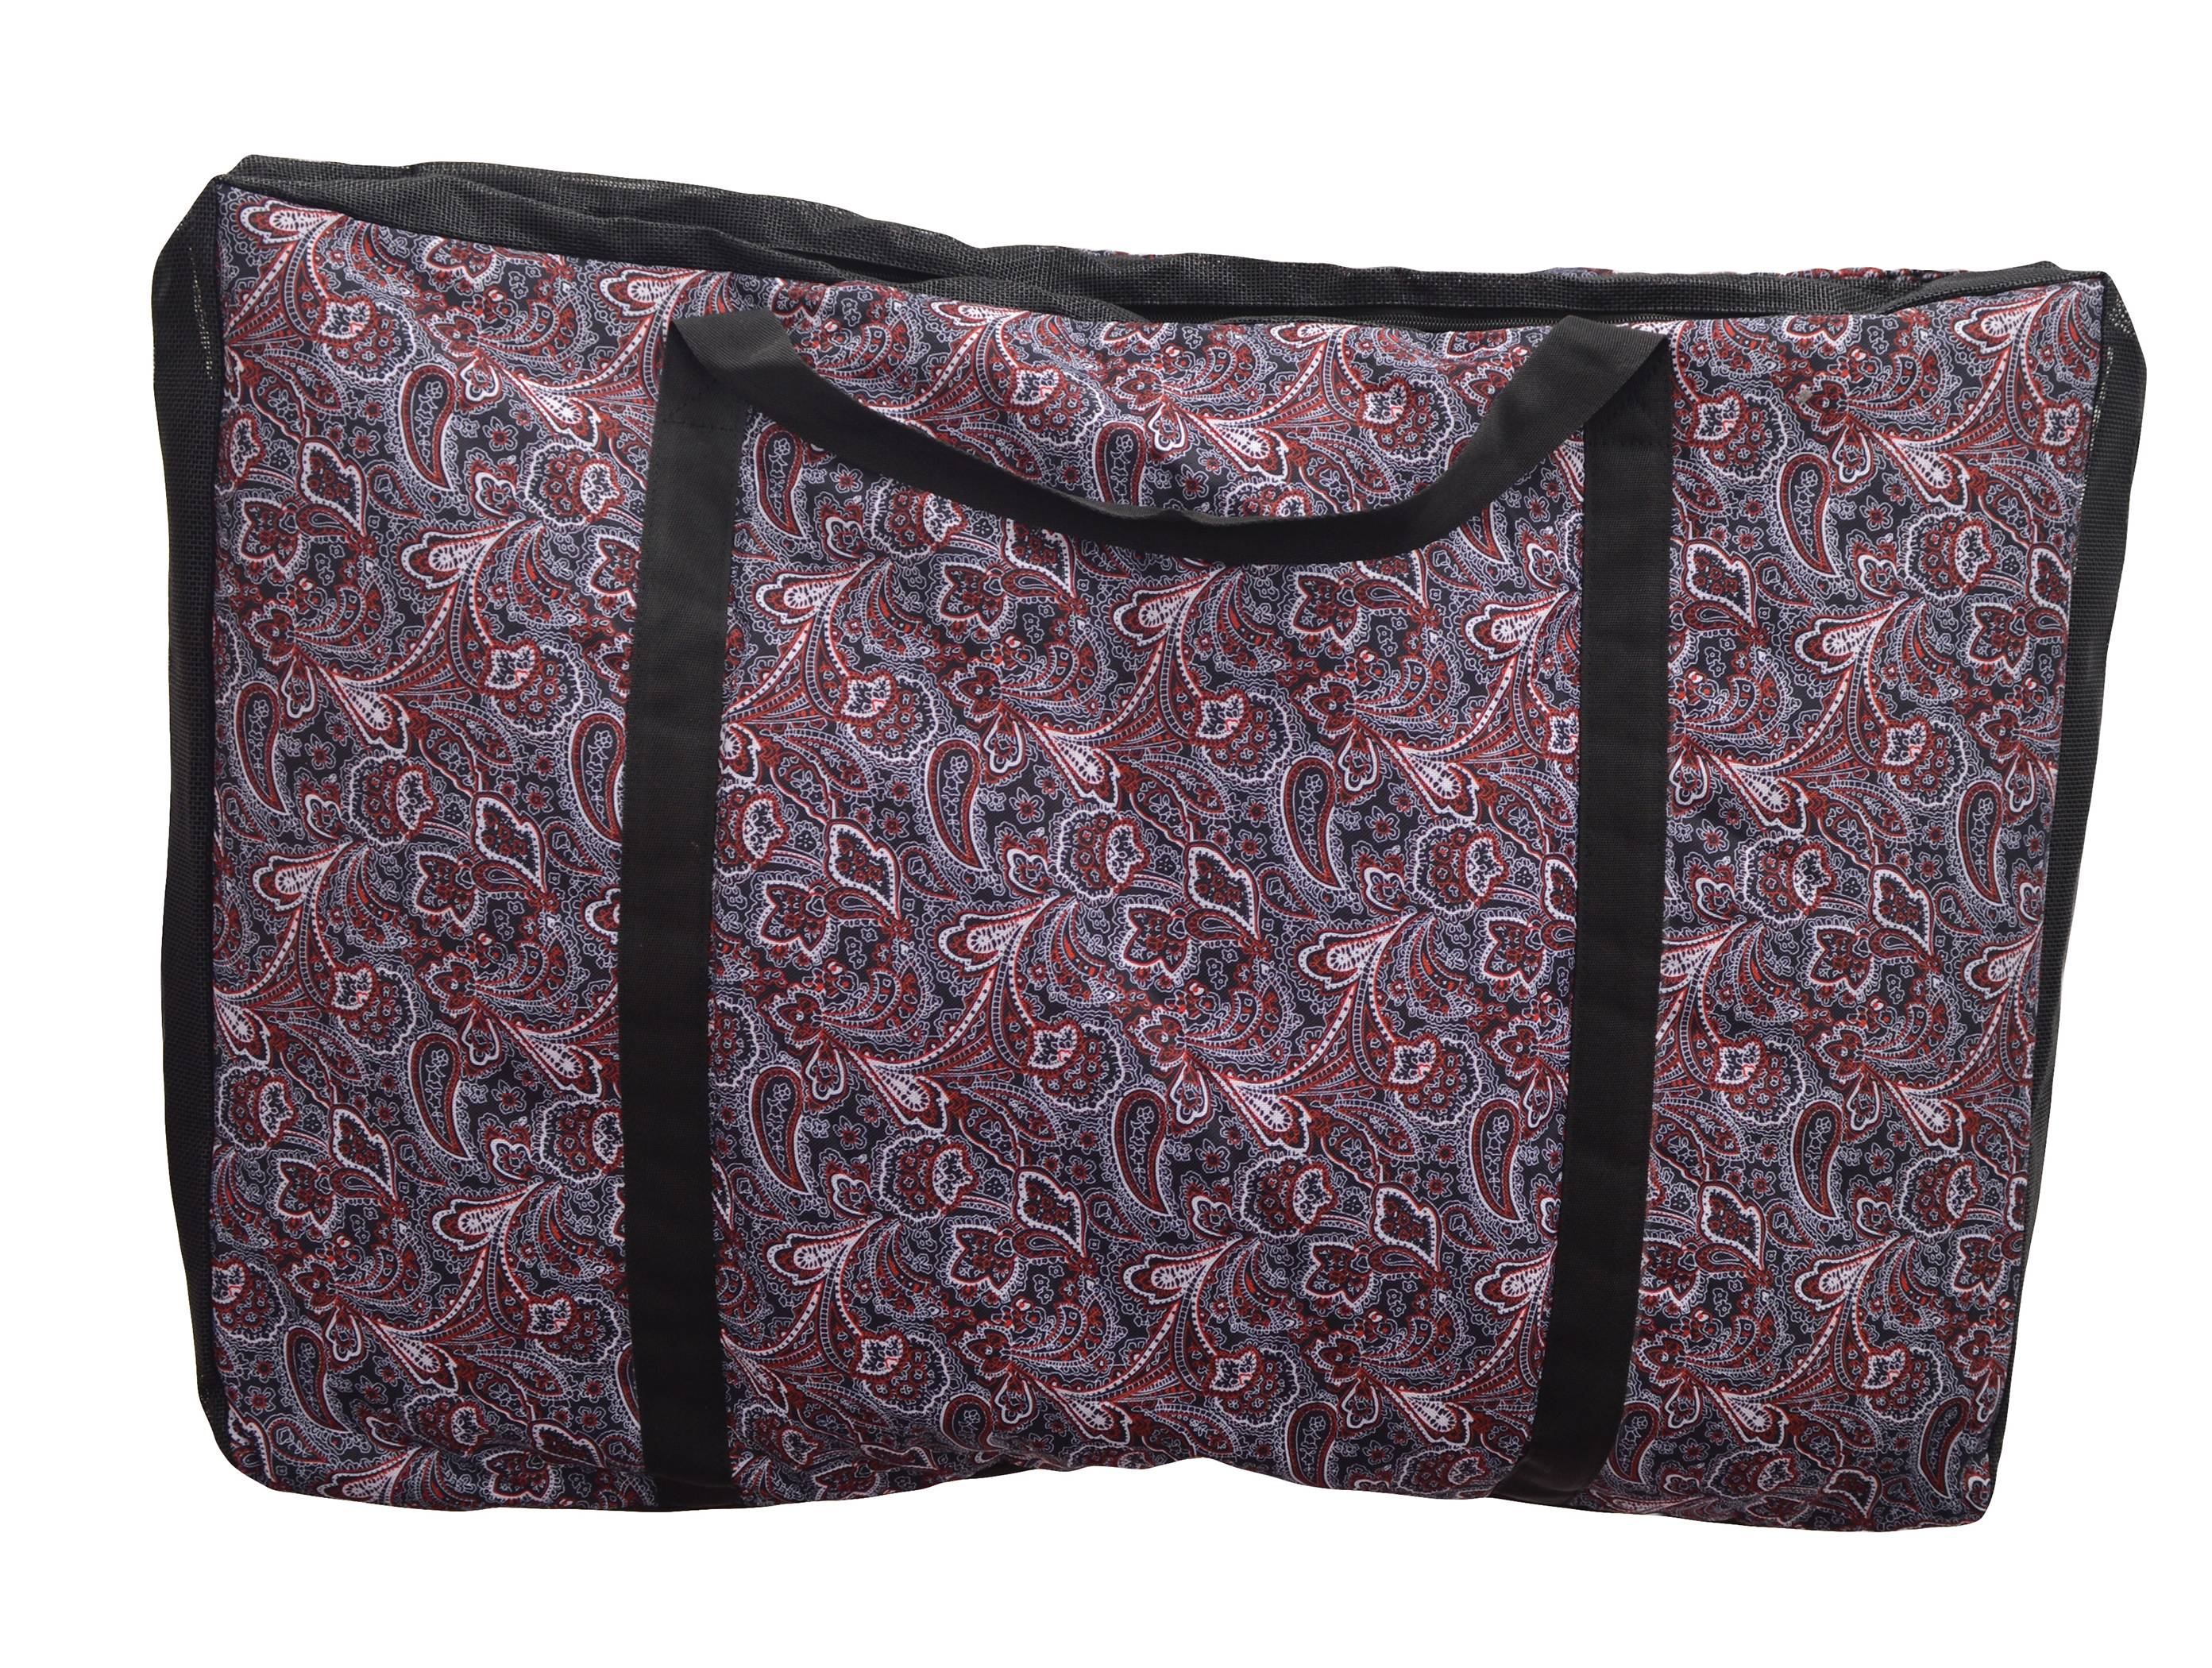 Equi-Sky Paisley Western Saddle Pad Bag